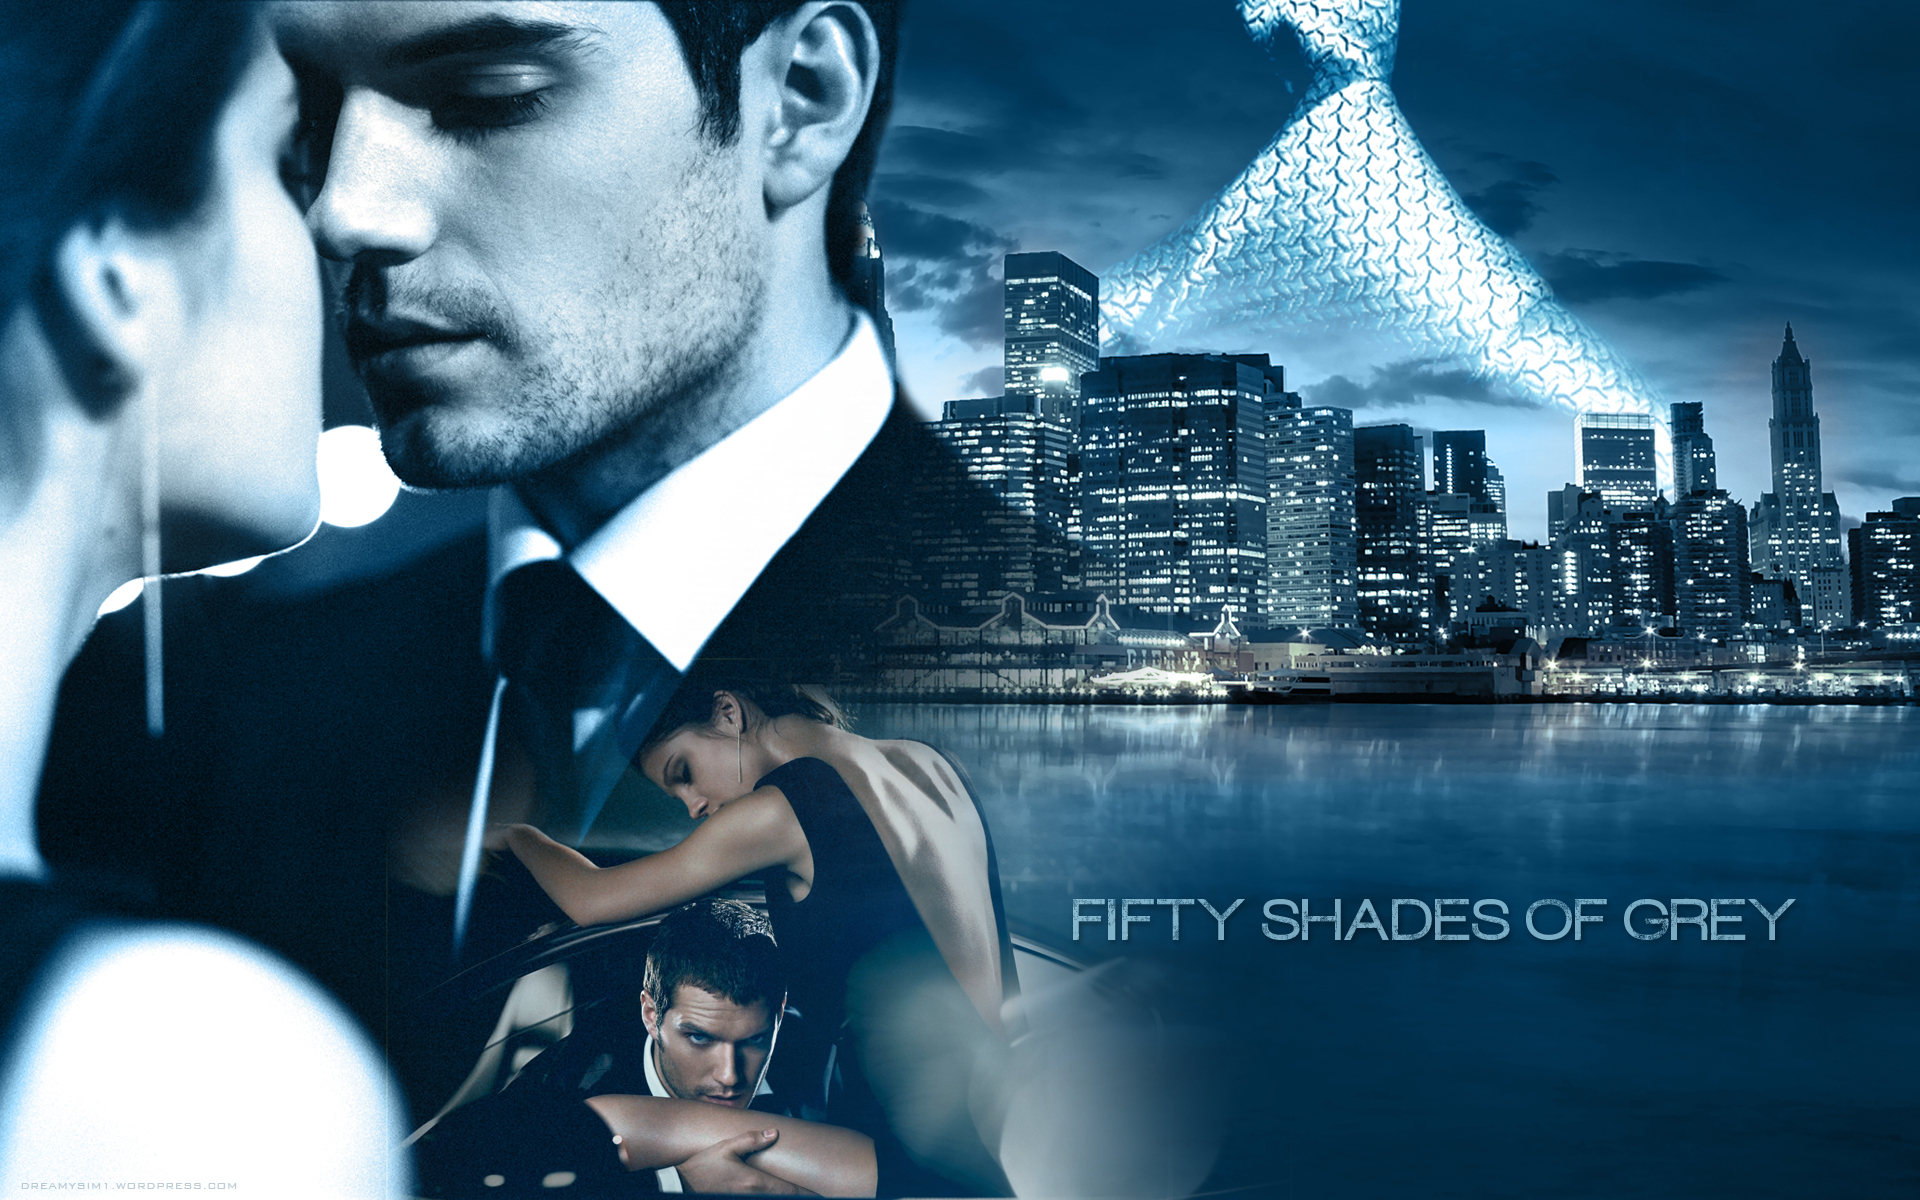 FIFTY SHADES OF GREY - Fifty Shades Trilogy Wallpaper (33869300.